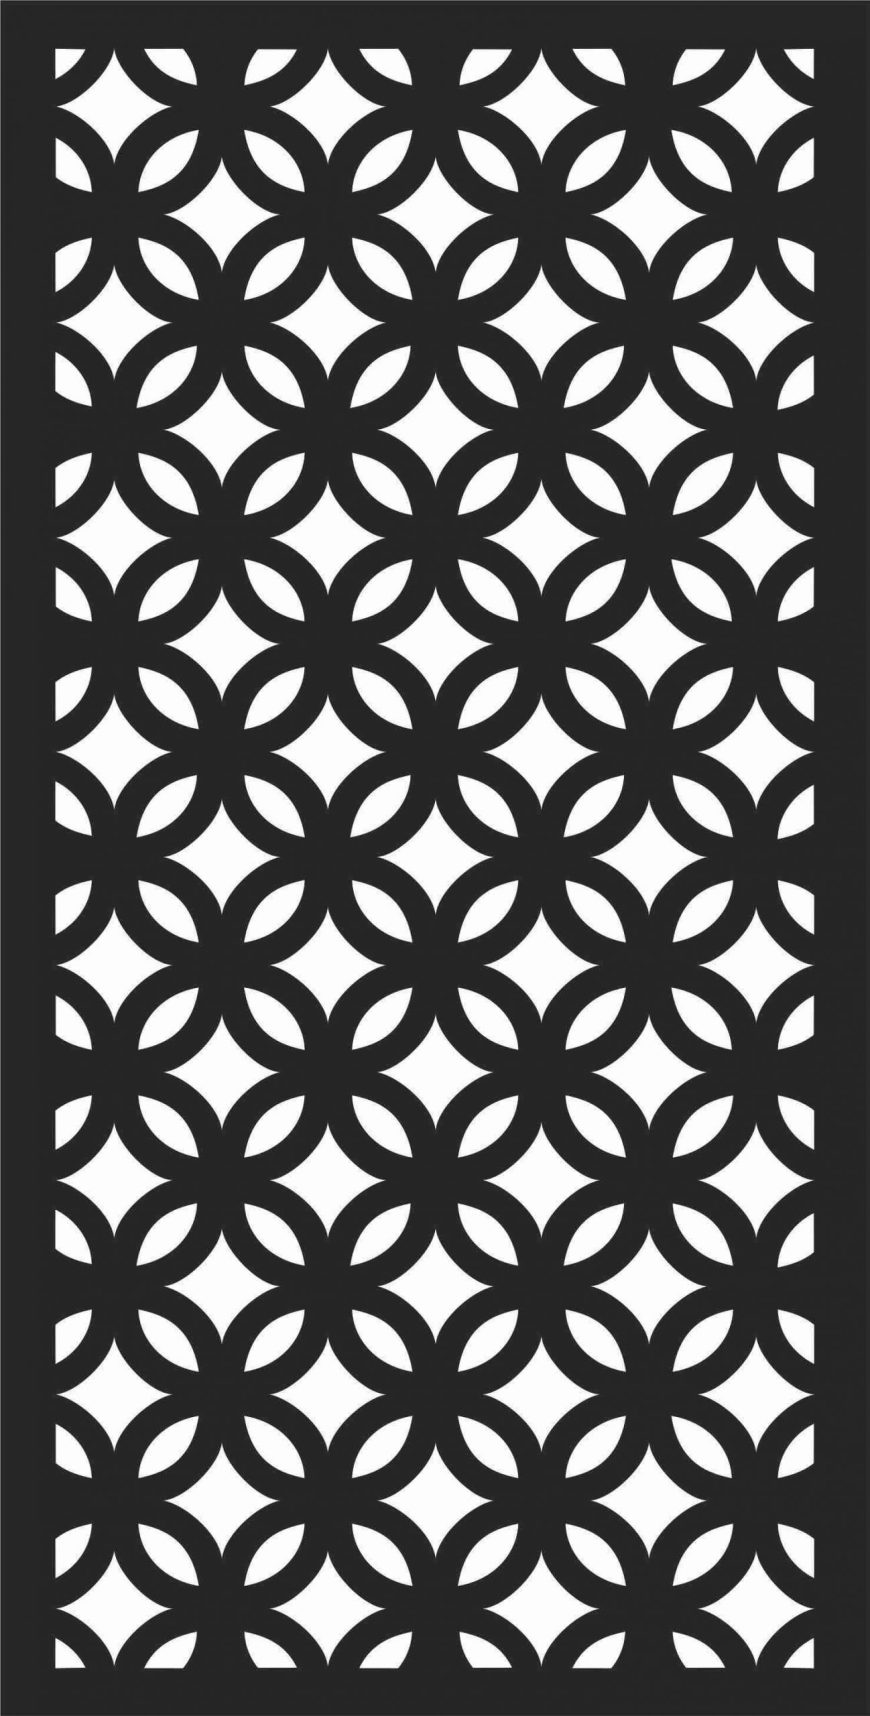 Decorative Screen Patterns For Laser Cutting 198 Free DXF File